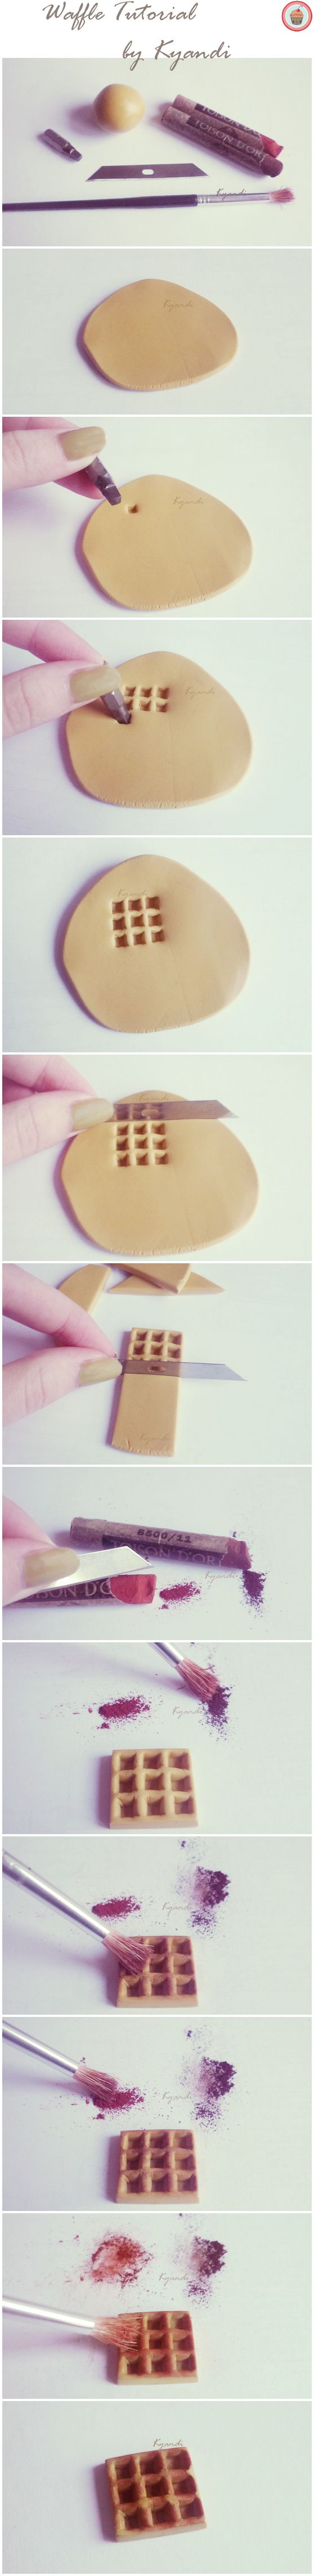 Original Pin-er Wrote: Polymer clay waffle tutorial by ~Kyandi-charms on deviantART. I wrote: So trying this!